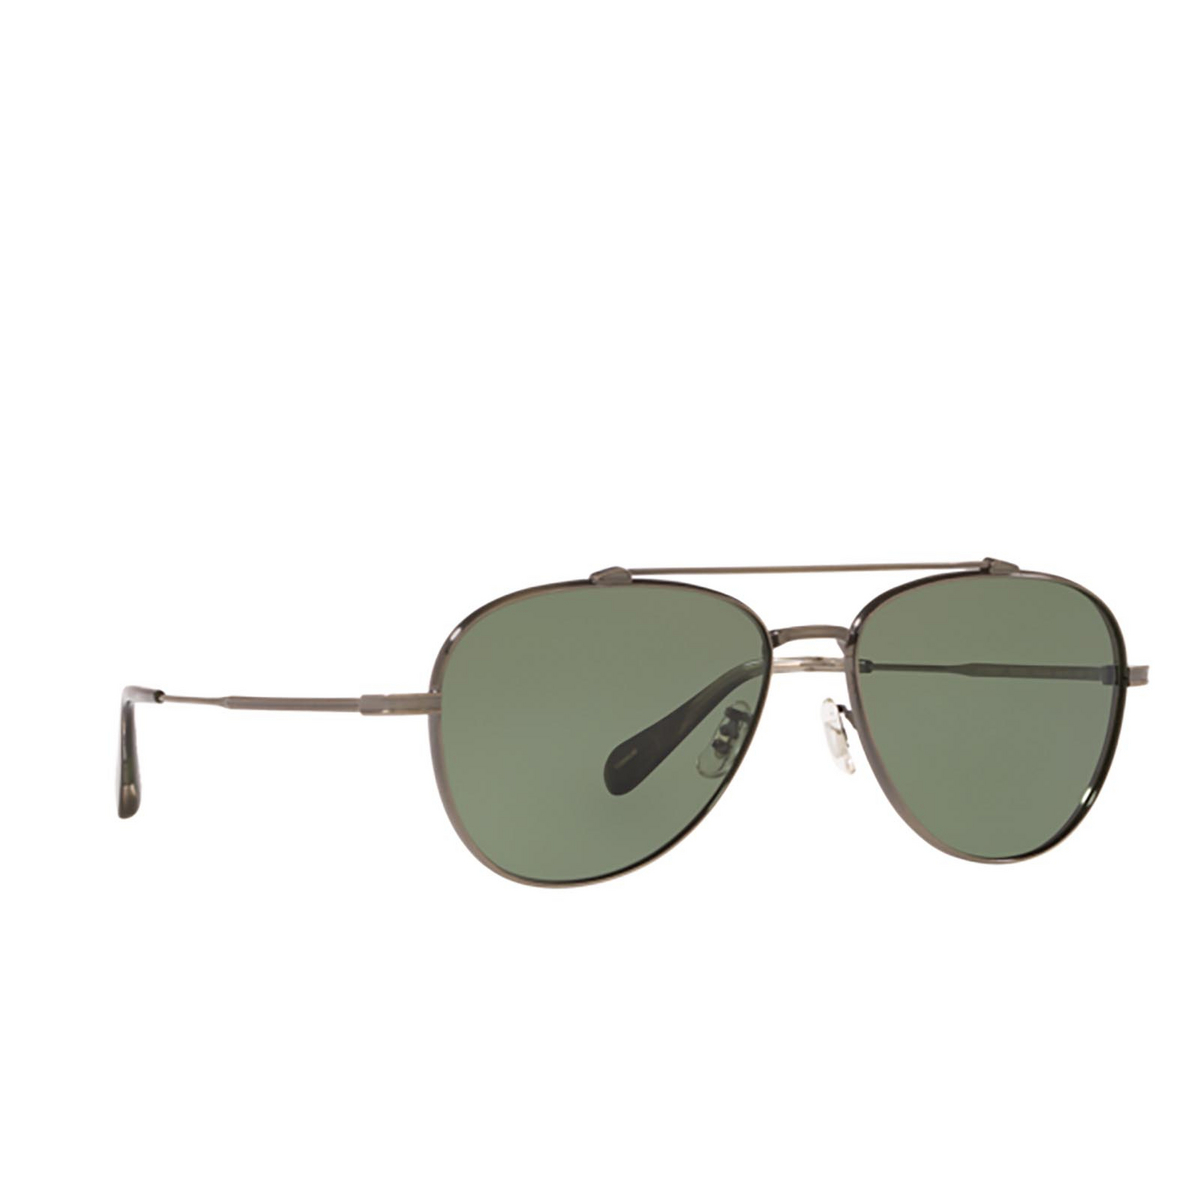 Oliver Peoples® Aviator Sunglasses: Rikson OV1266ST color Antique Pewter 50769A - three-quarters view.